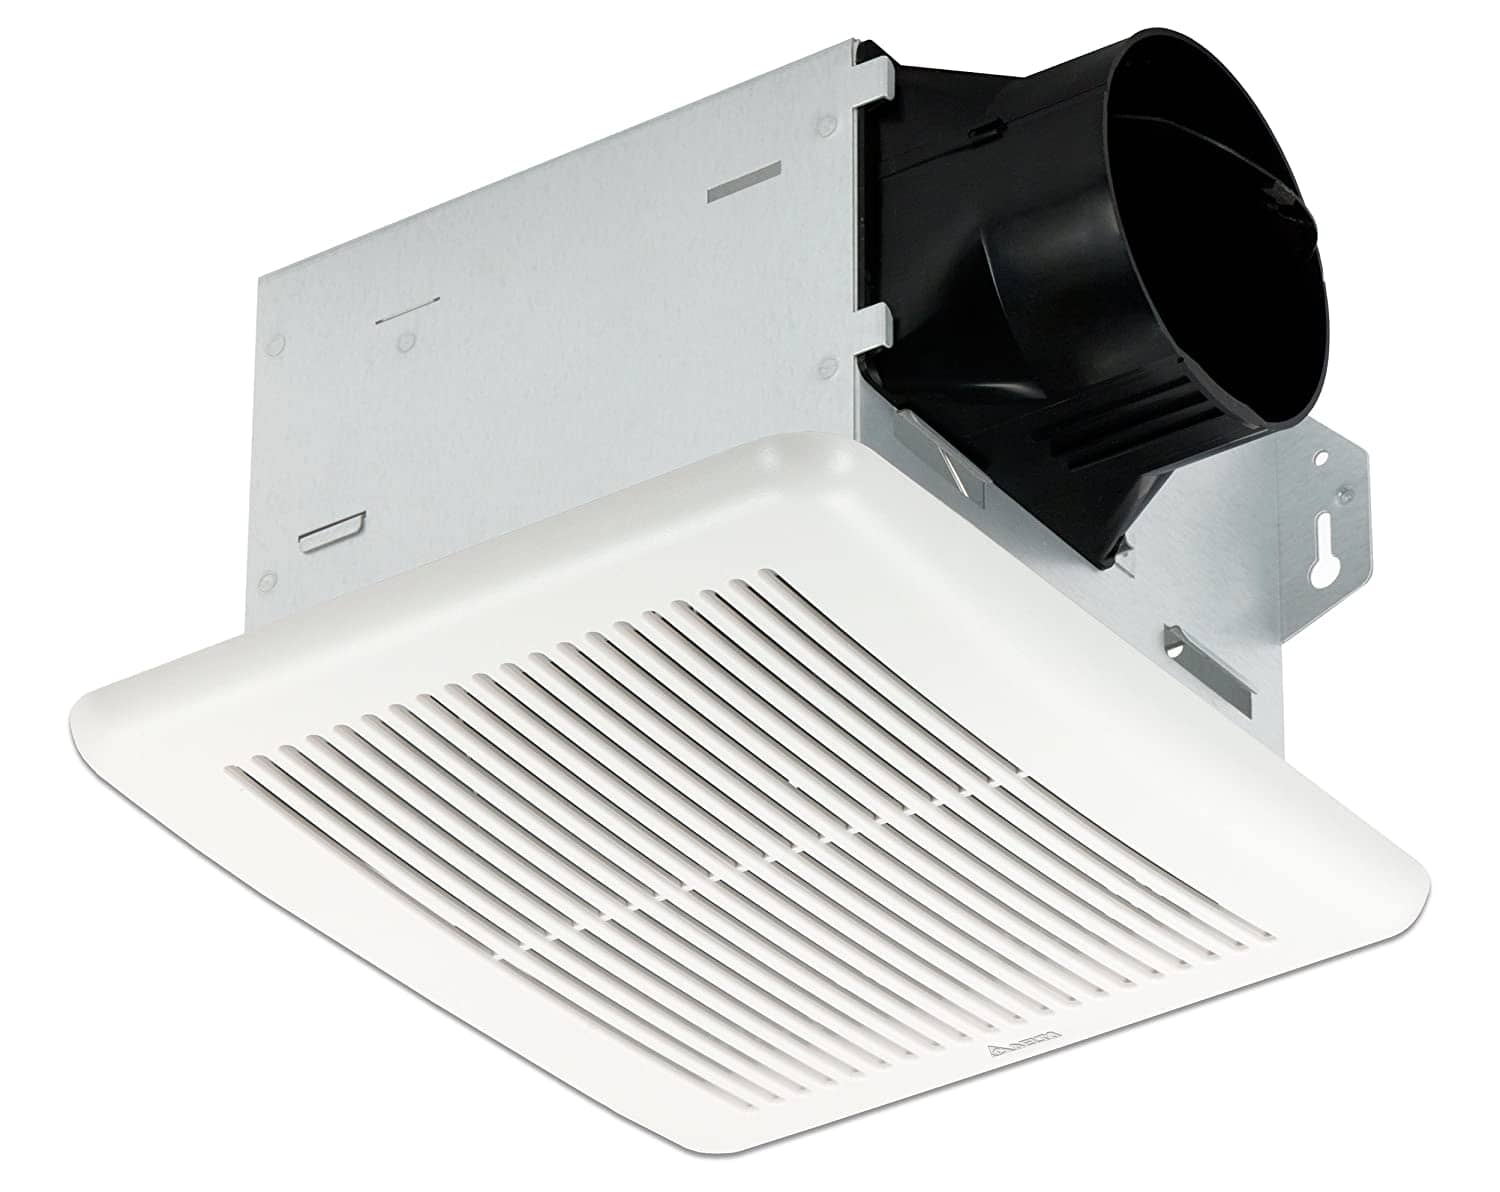 Delta Breez Integrity 80 CFM Exhaust Bathroom Fan $36.12 at Amazon and Home Depot